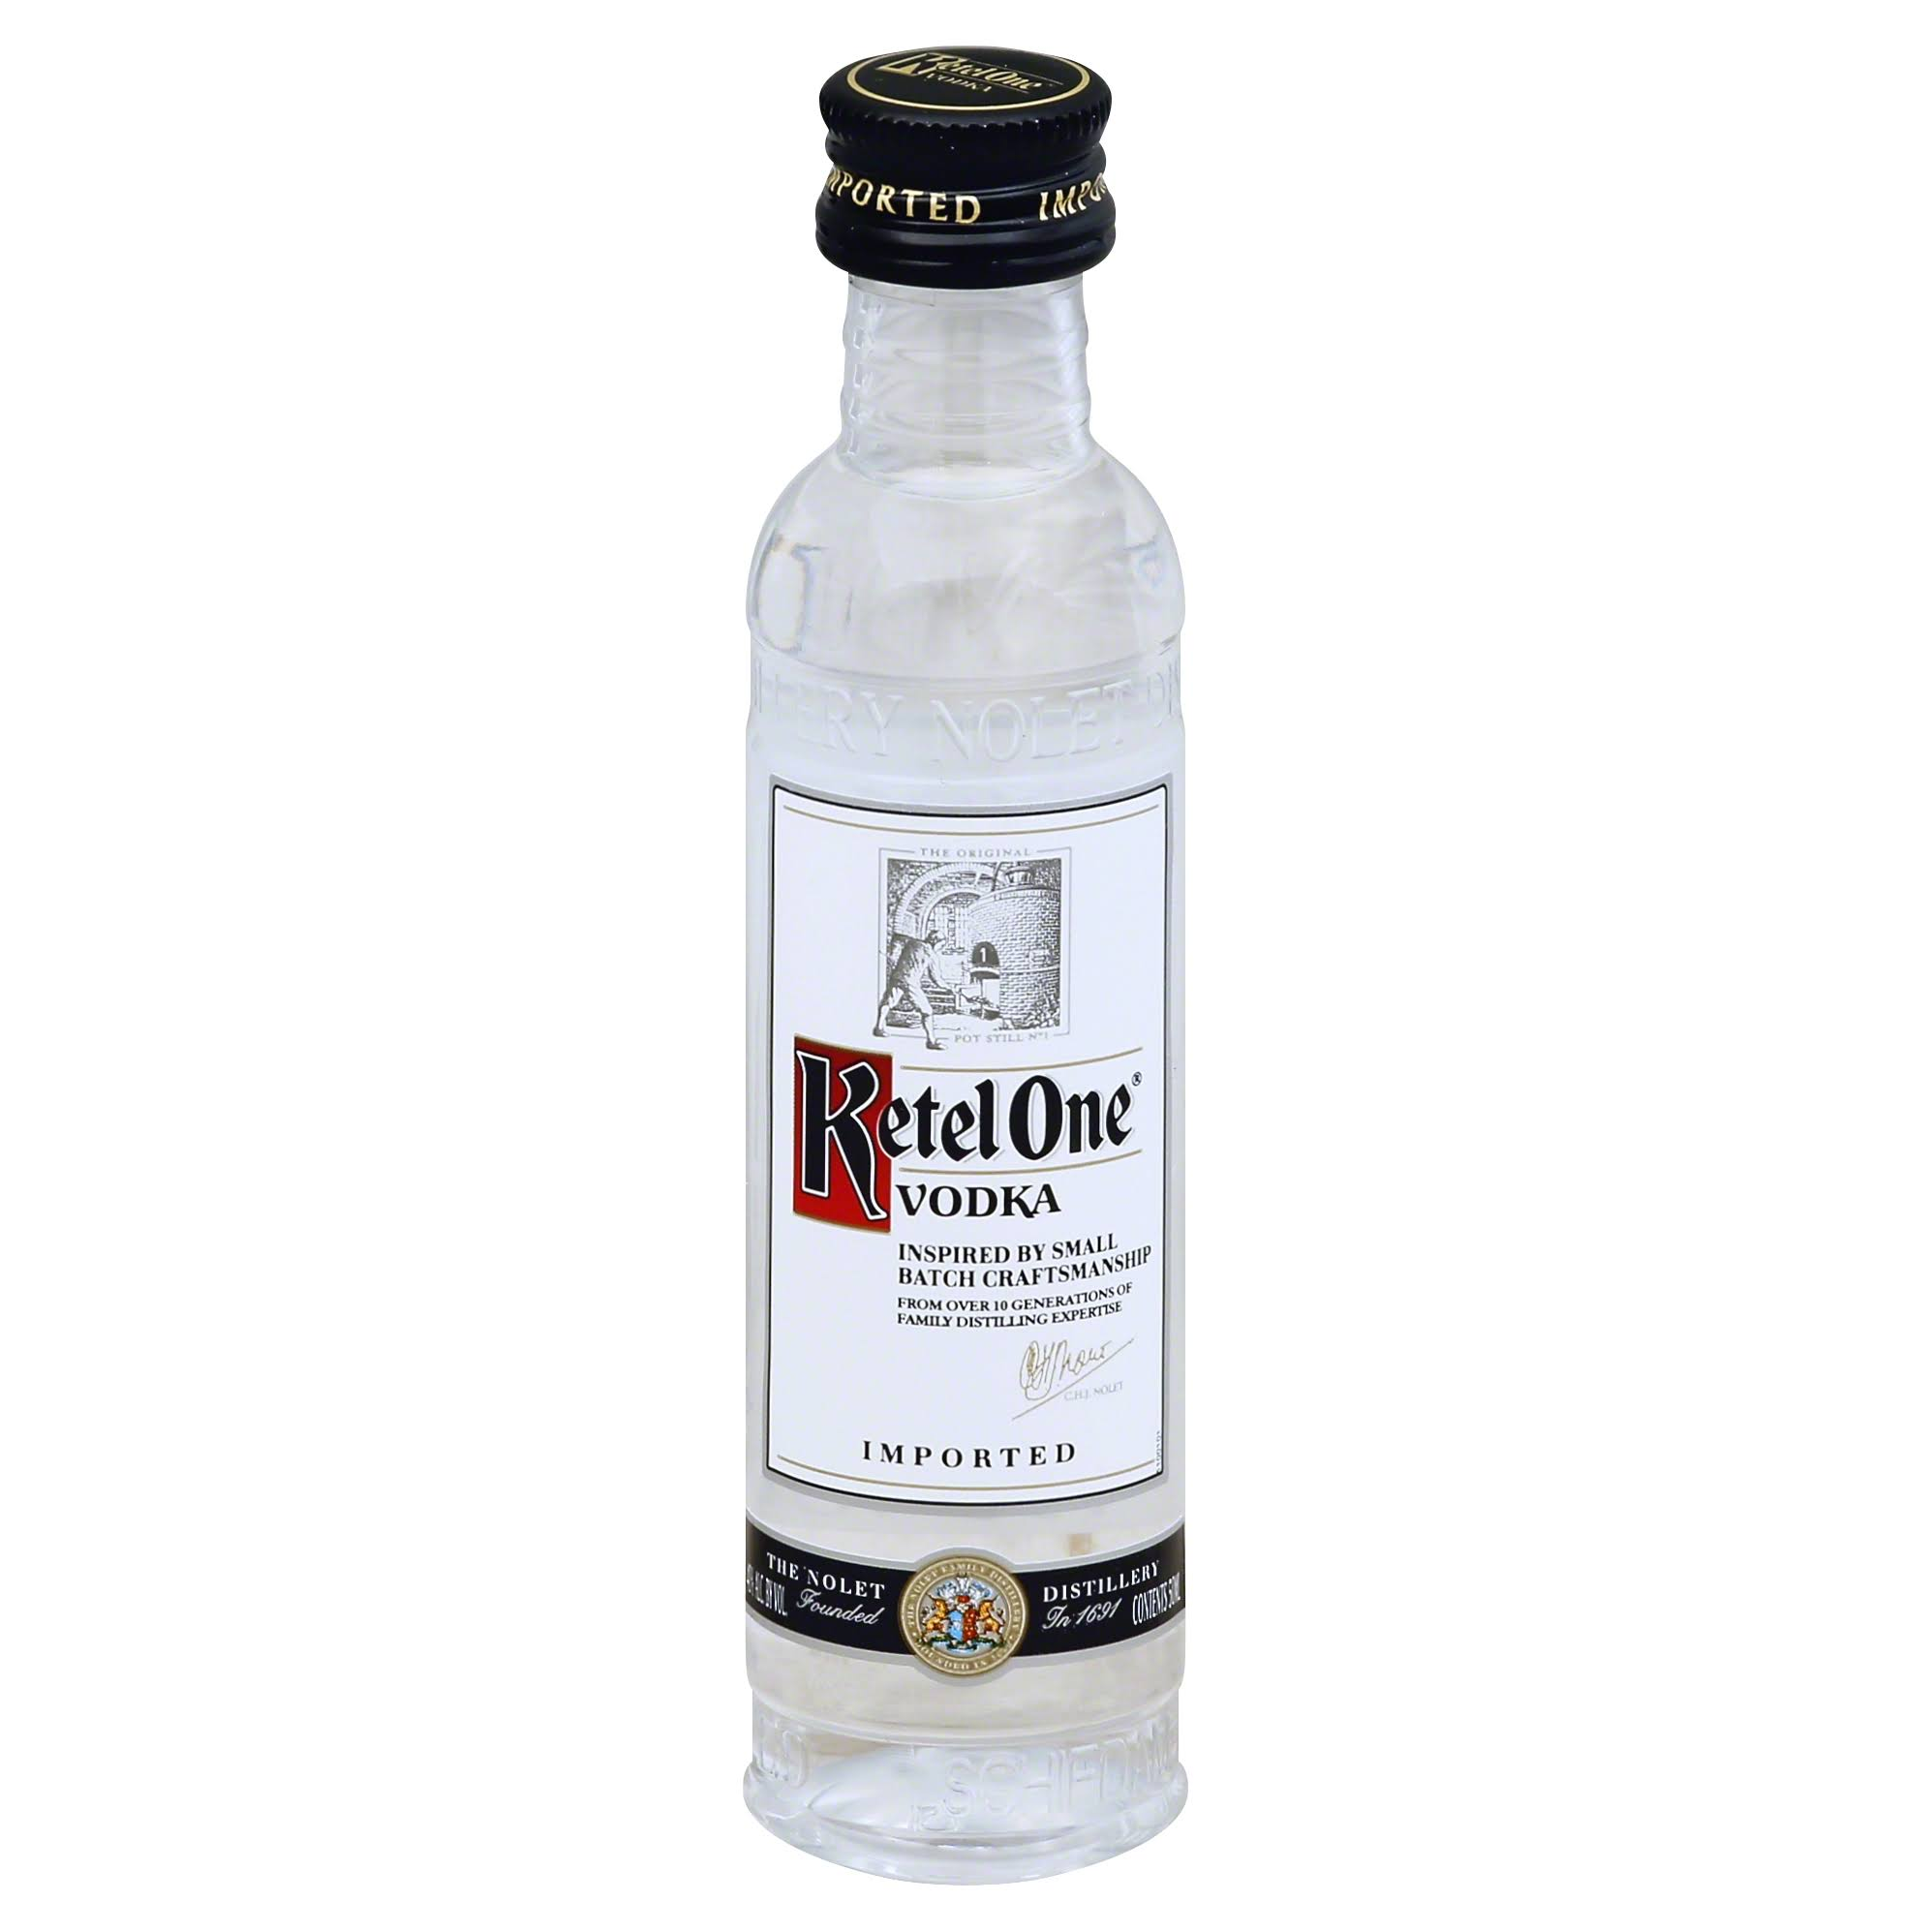 Ketel One Vodka - 50 ml bottle